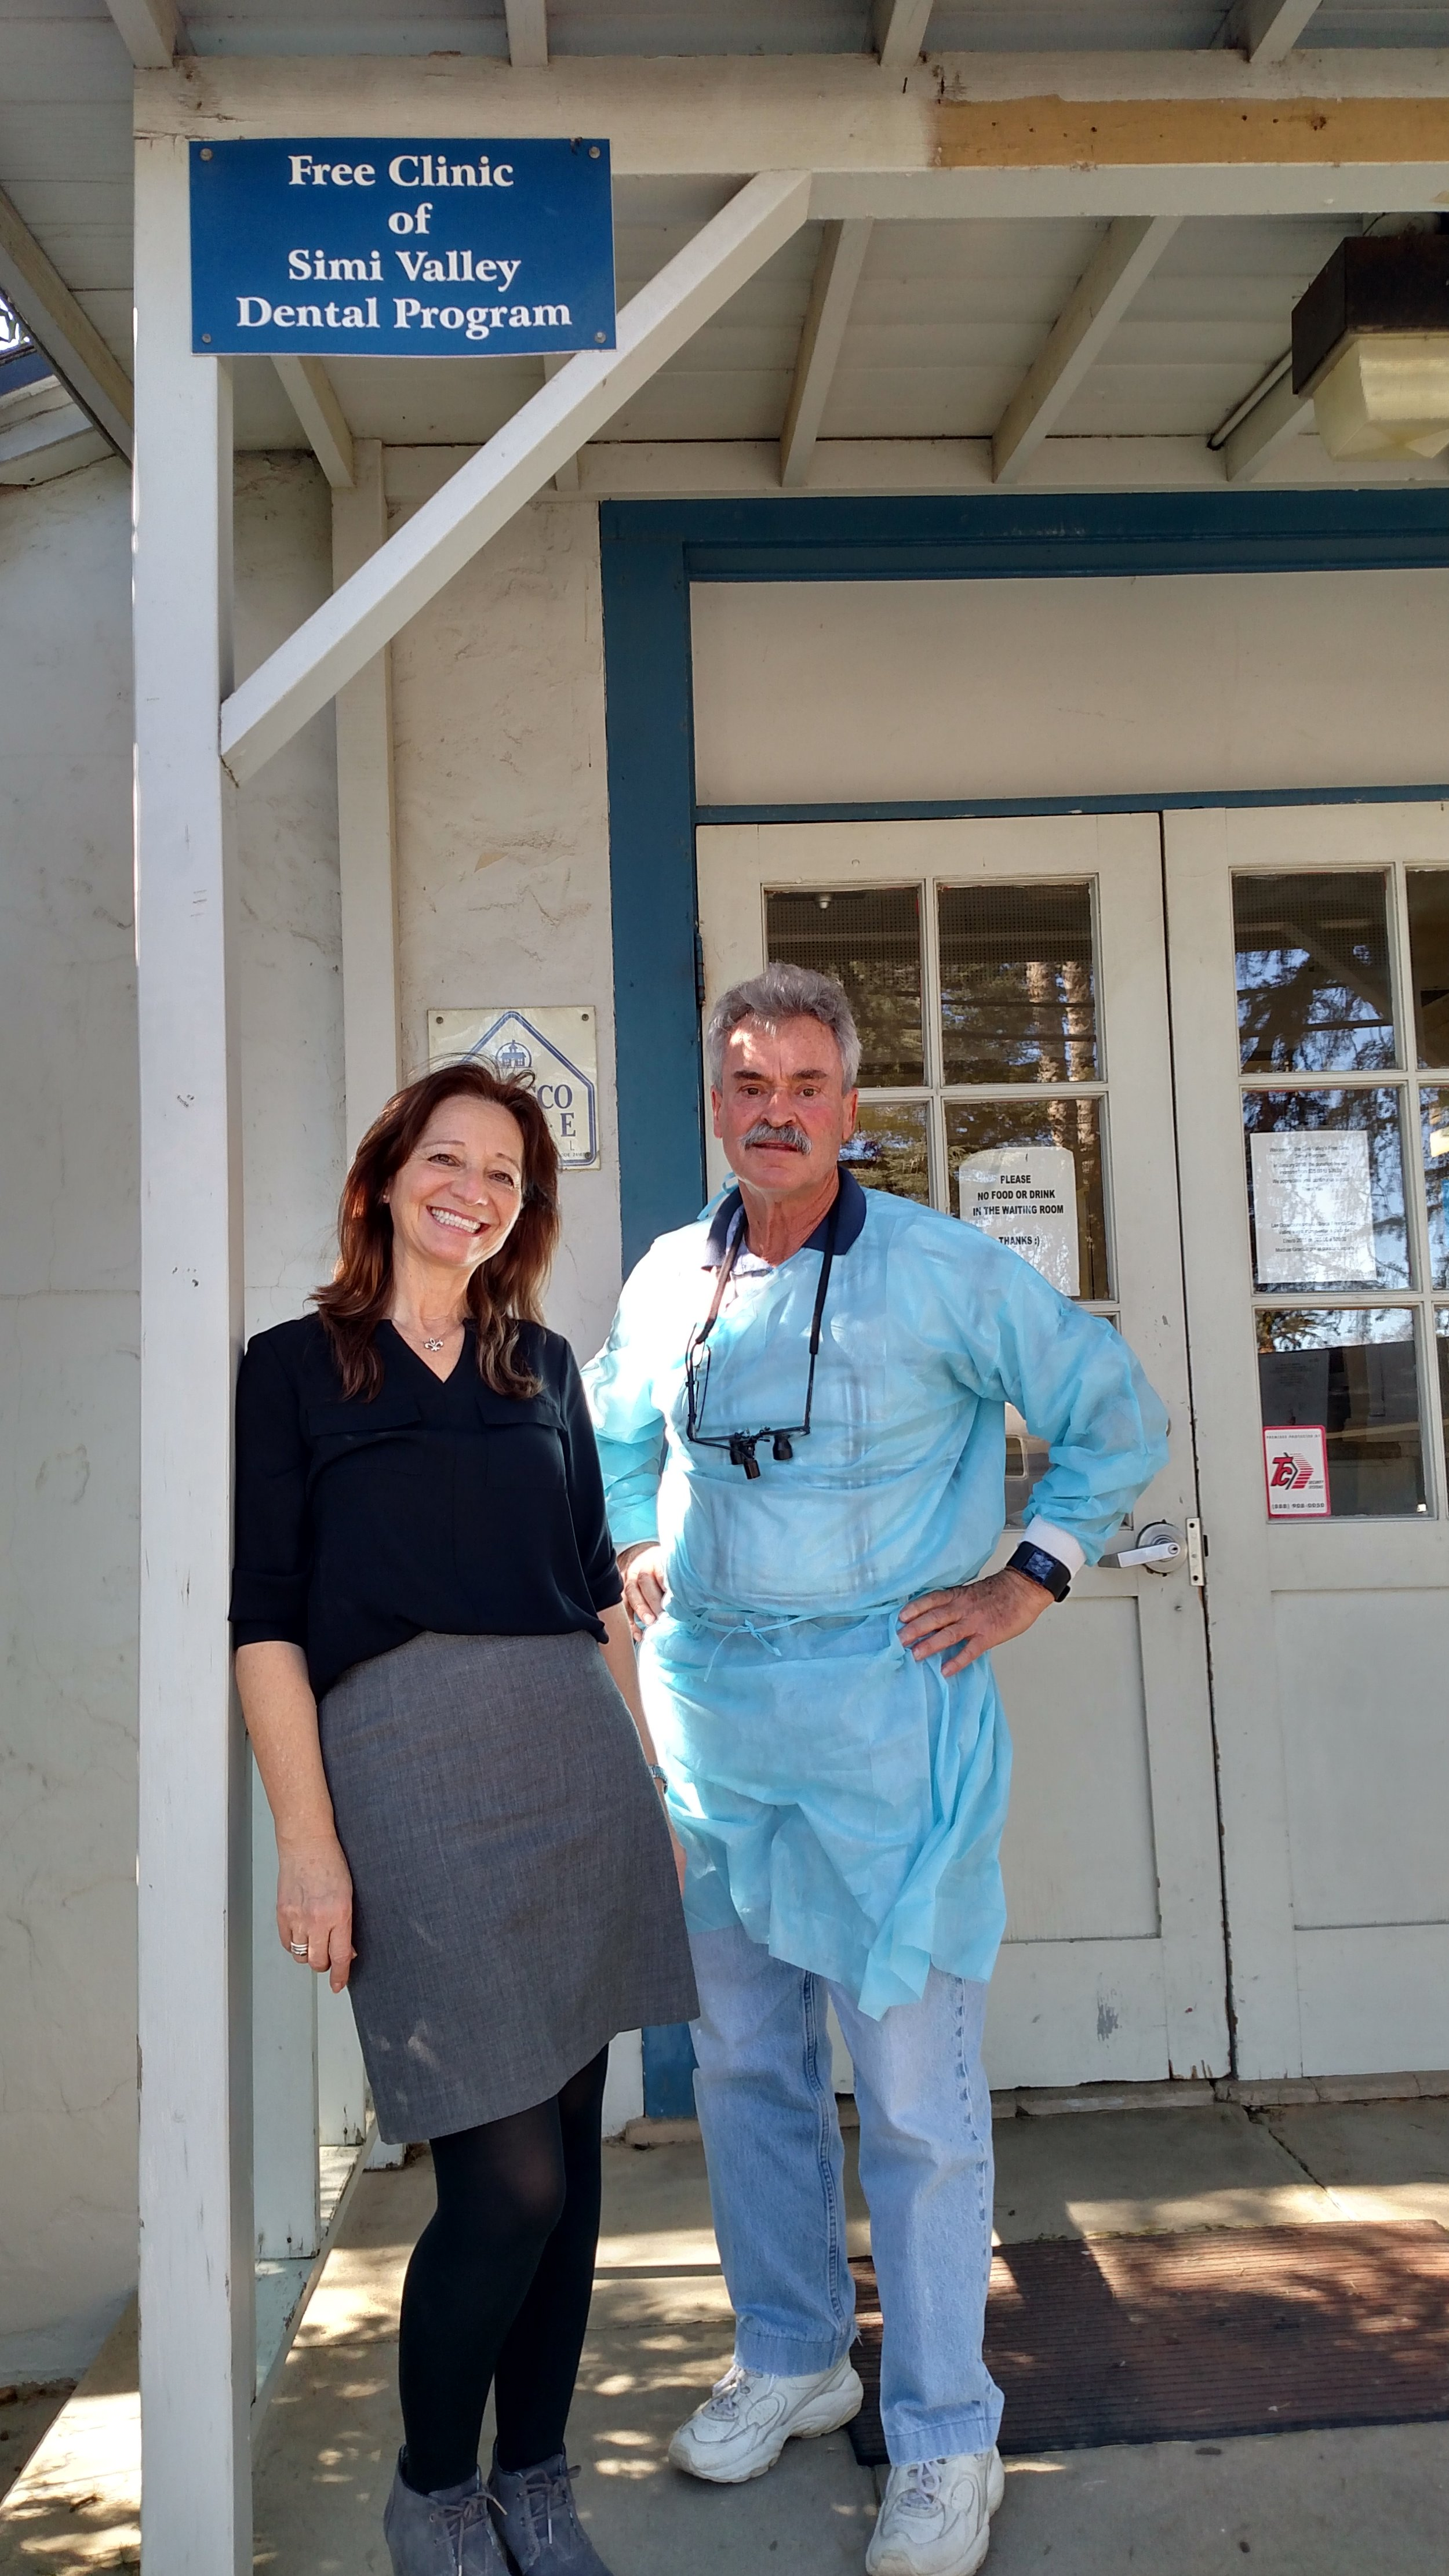 Dr. Fanning with Olga, office manager at Free Clinic of Simi Valley Dental Program.